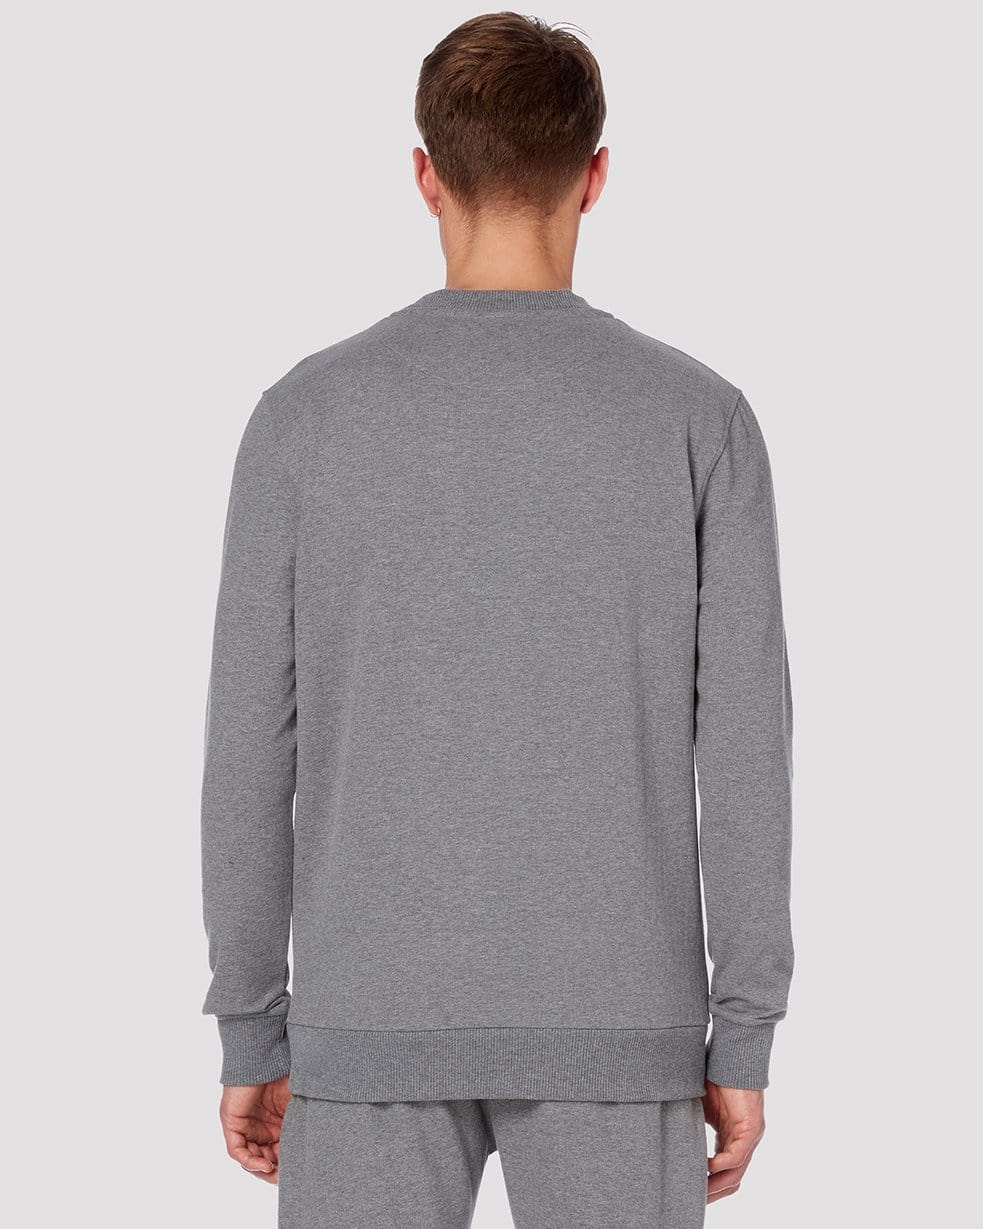 Luck Sweat In Grey